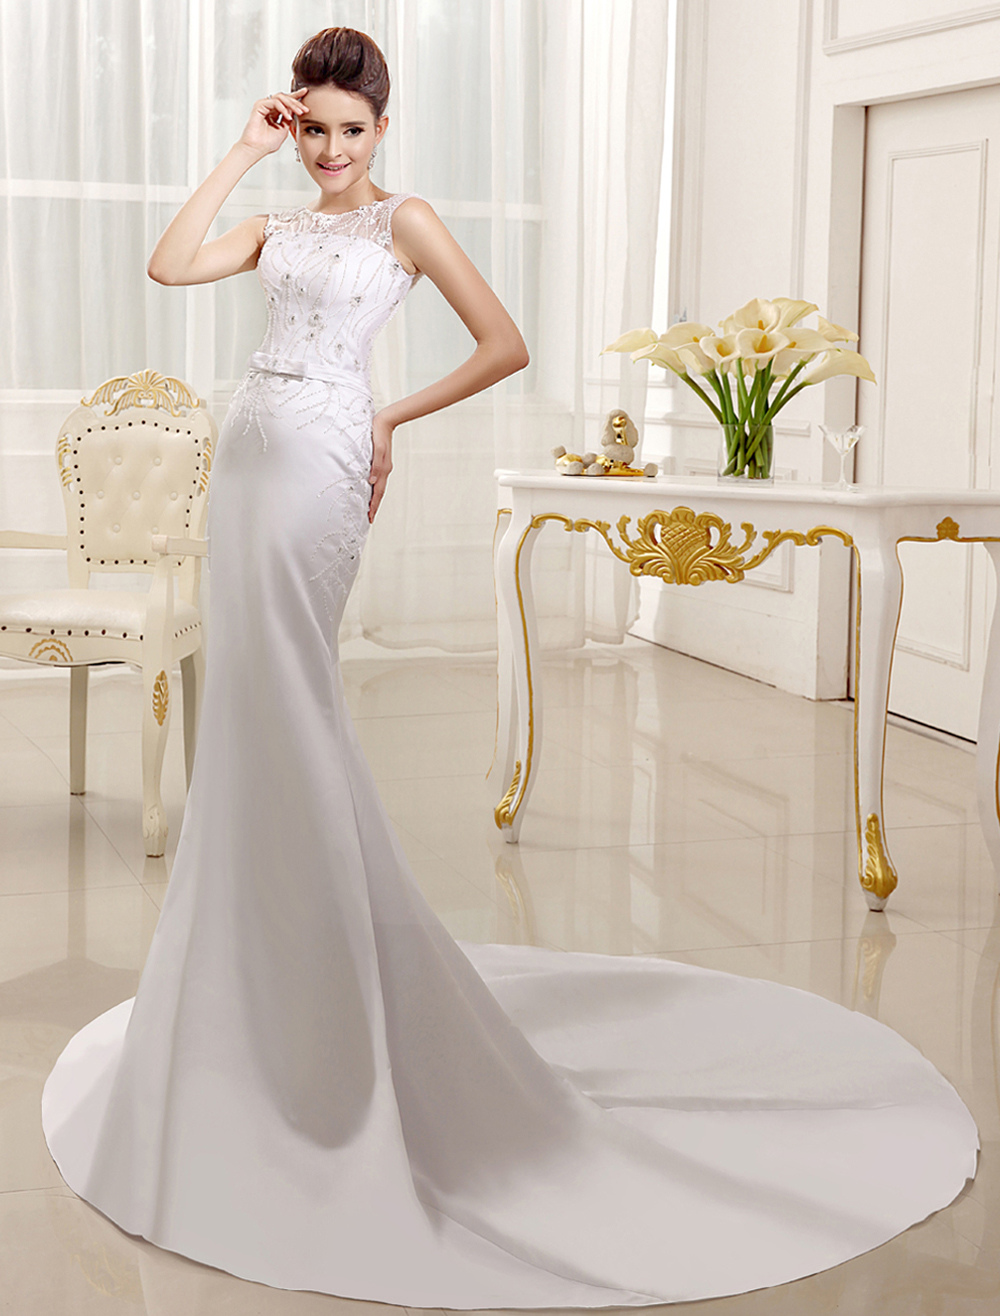 Court Train White Bridal Wedding Dress with Jewel Neck Buttons Satin